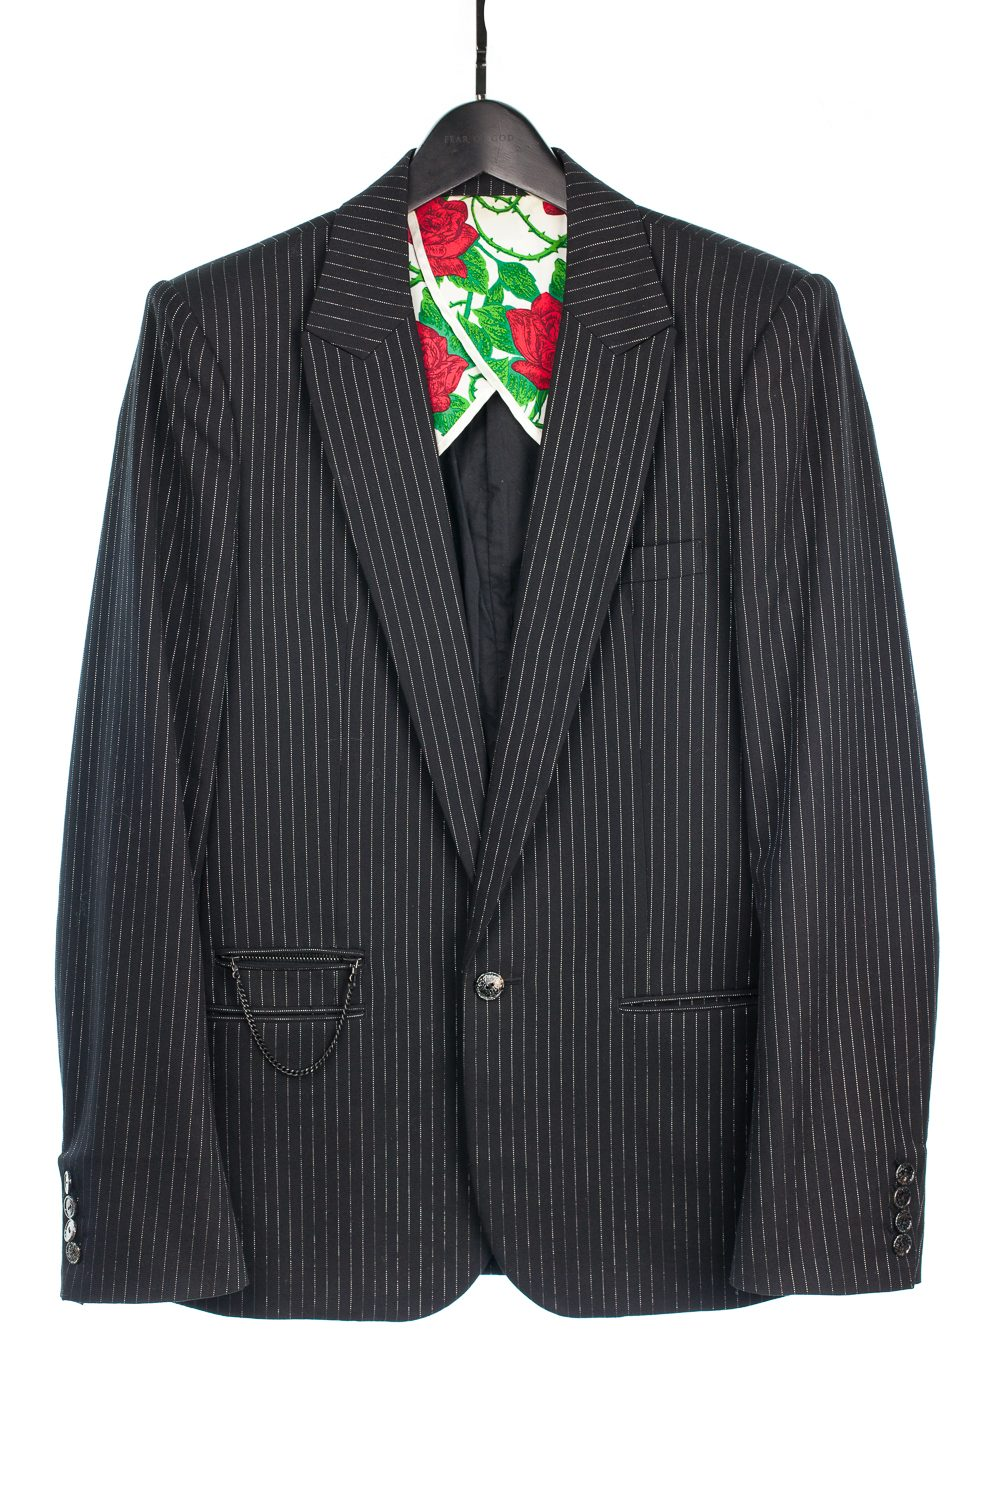 "SS06 ""Welcome to the Shadow"" Silver Thread Pinstripe Blazer"